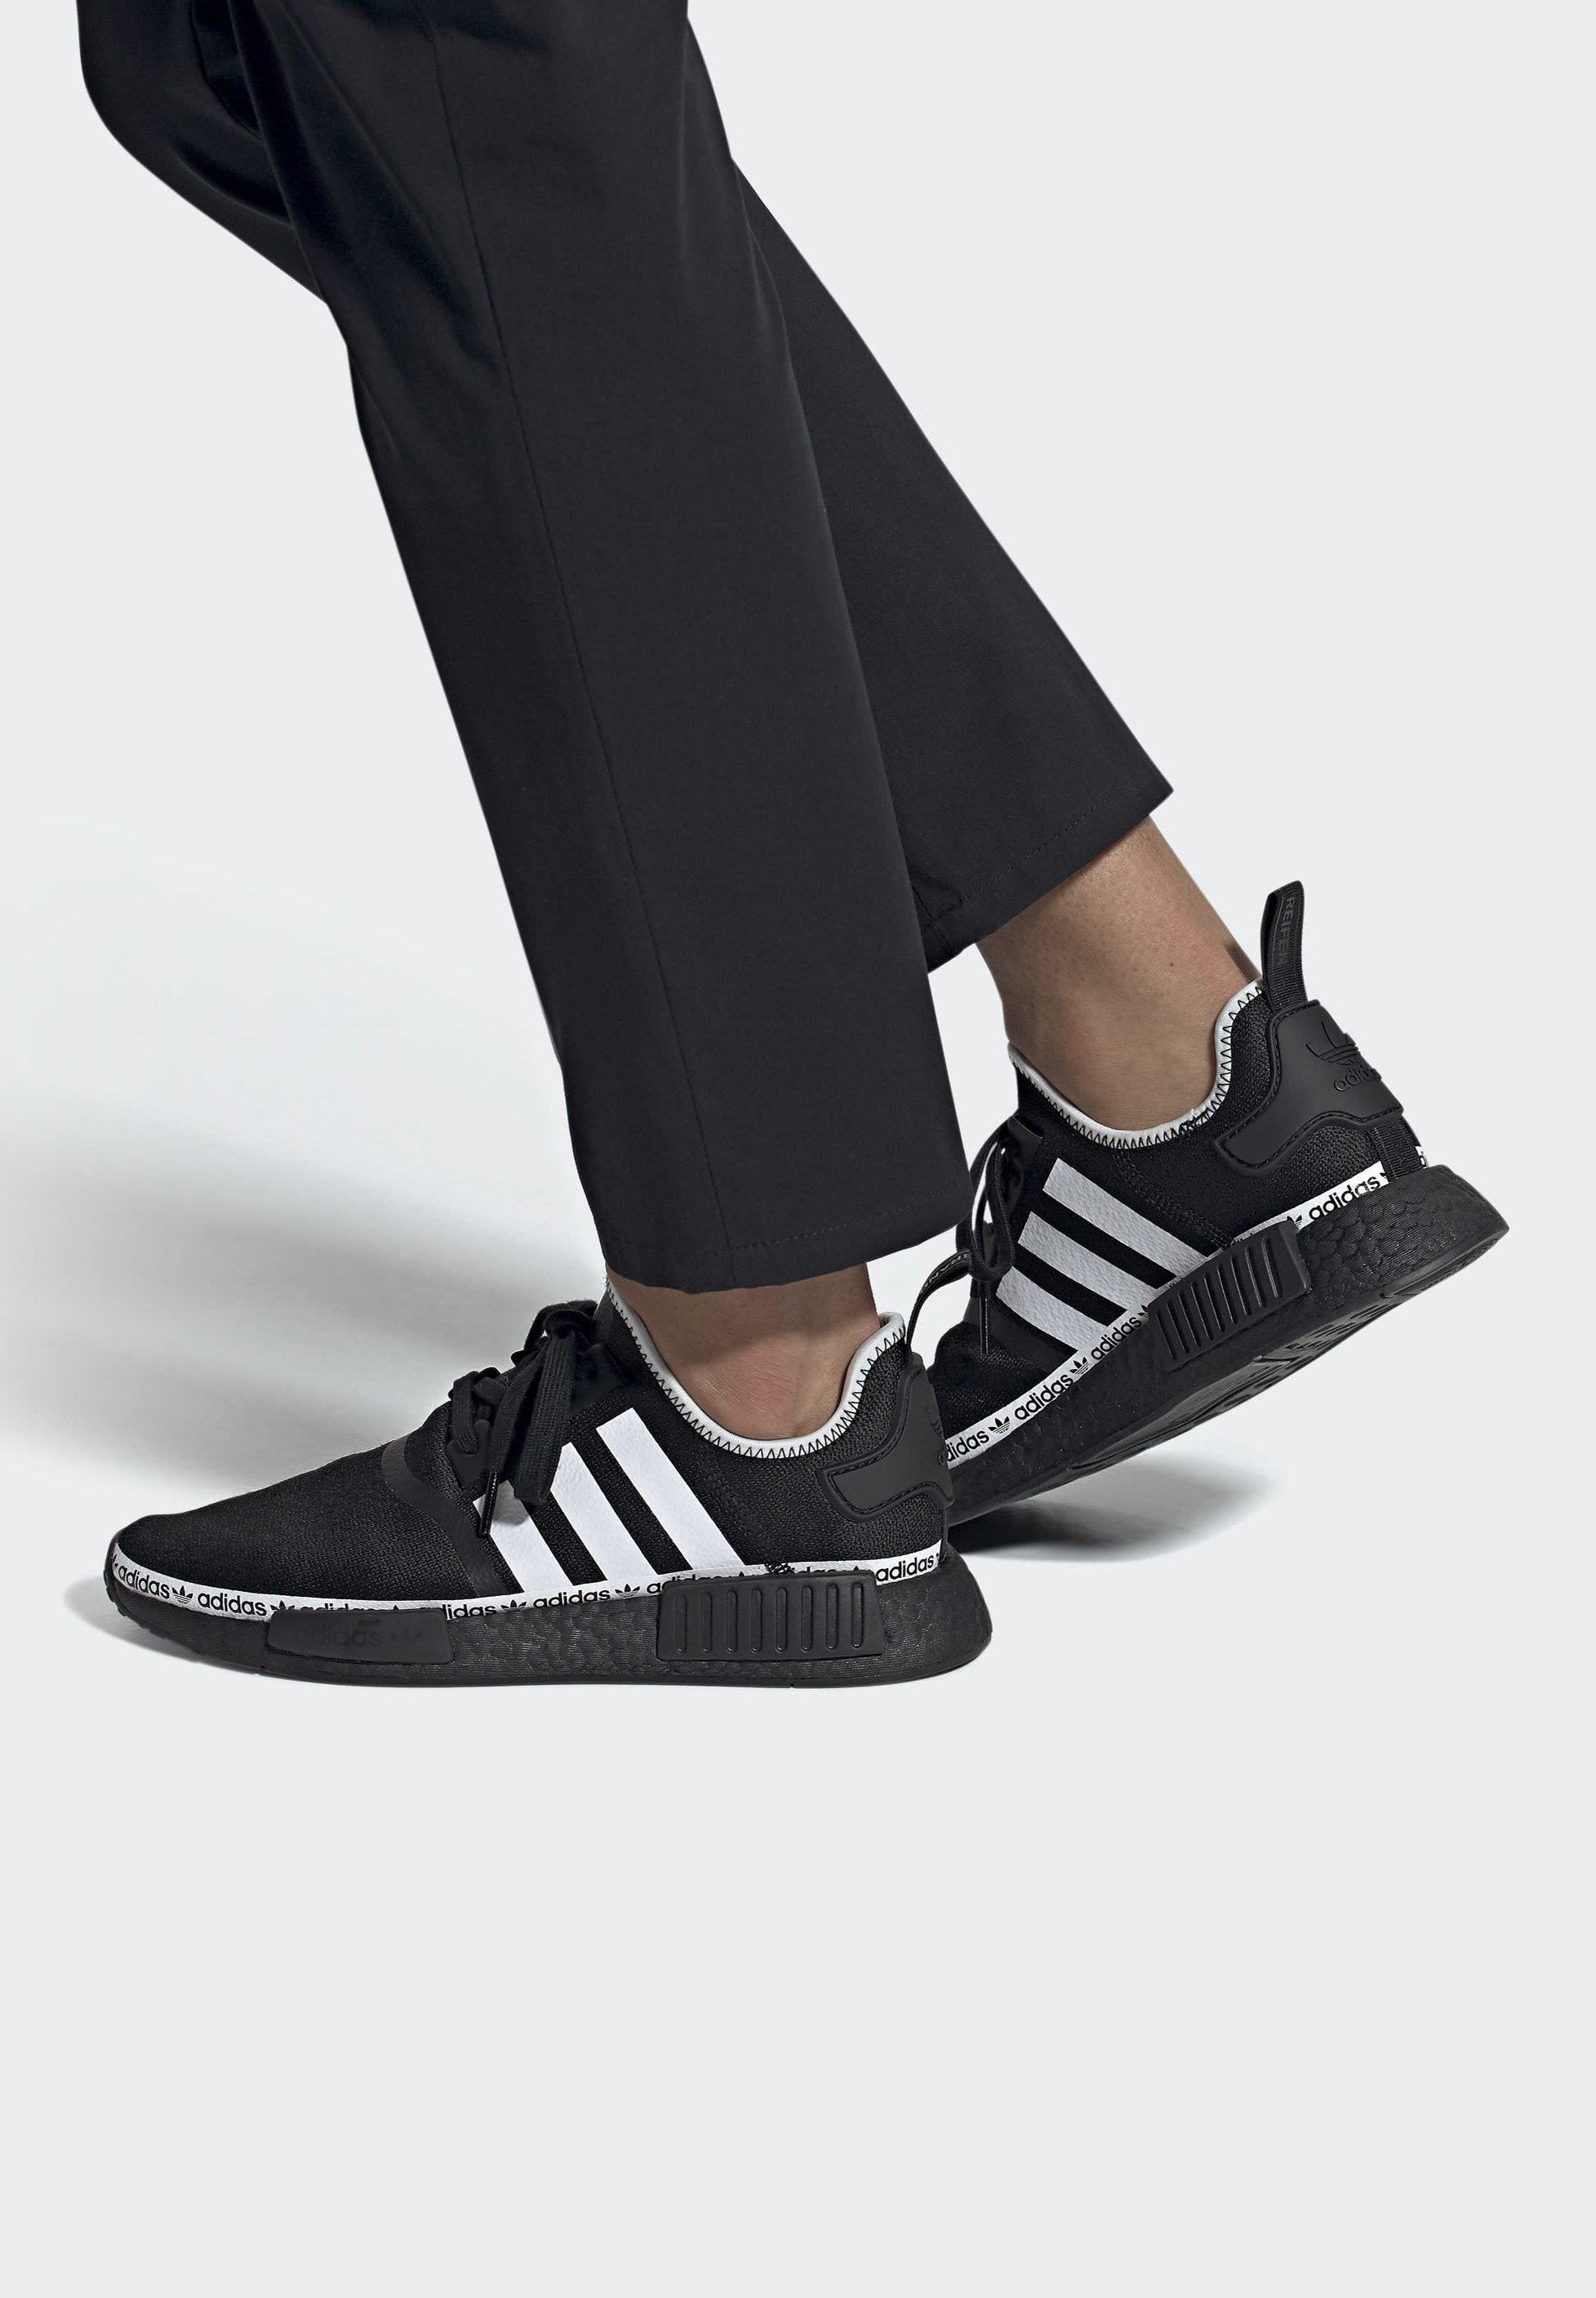 Adidas Originals Nmd_r1 - Matalavartiset Tennarit Black